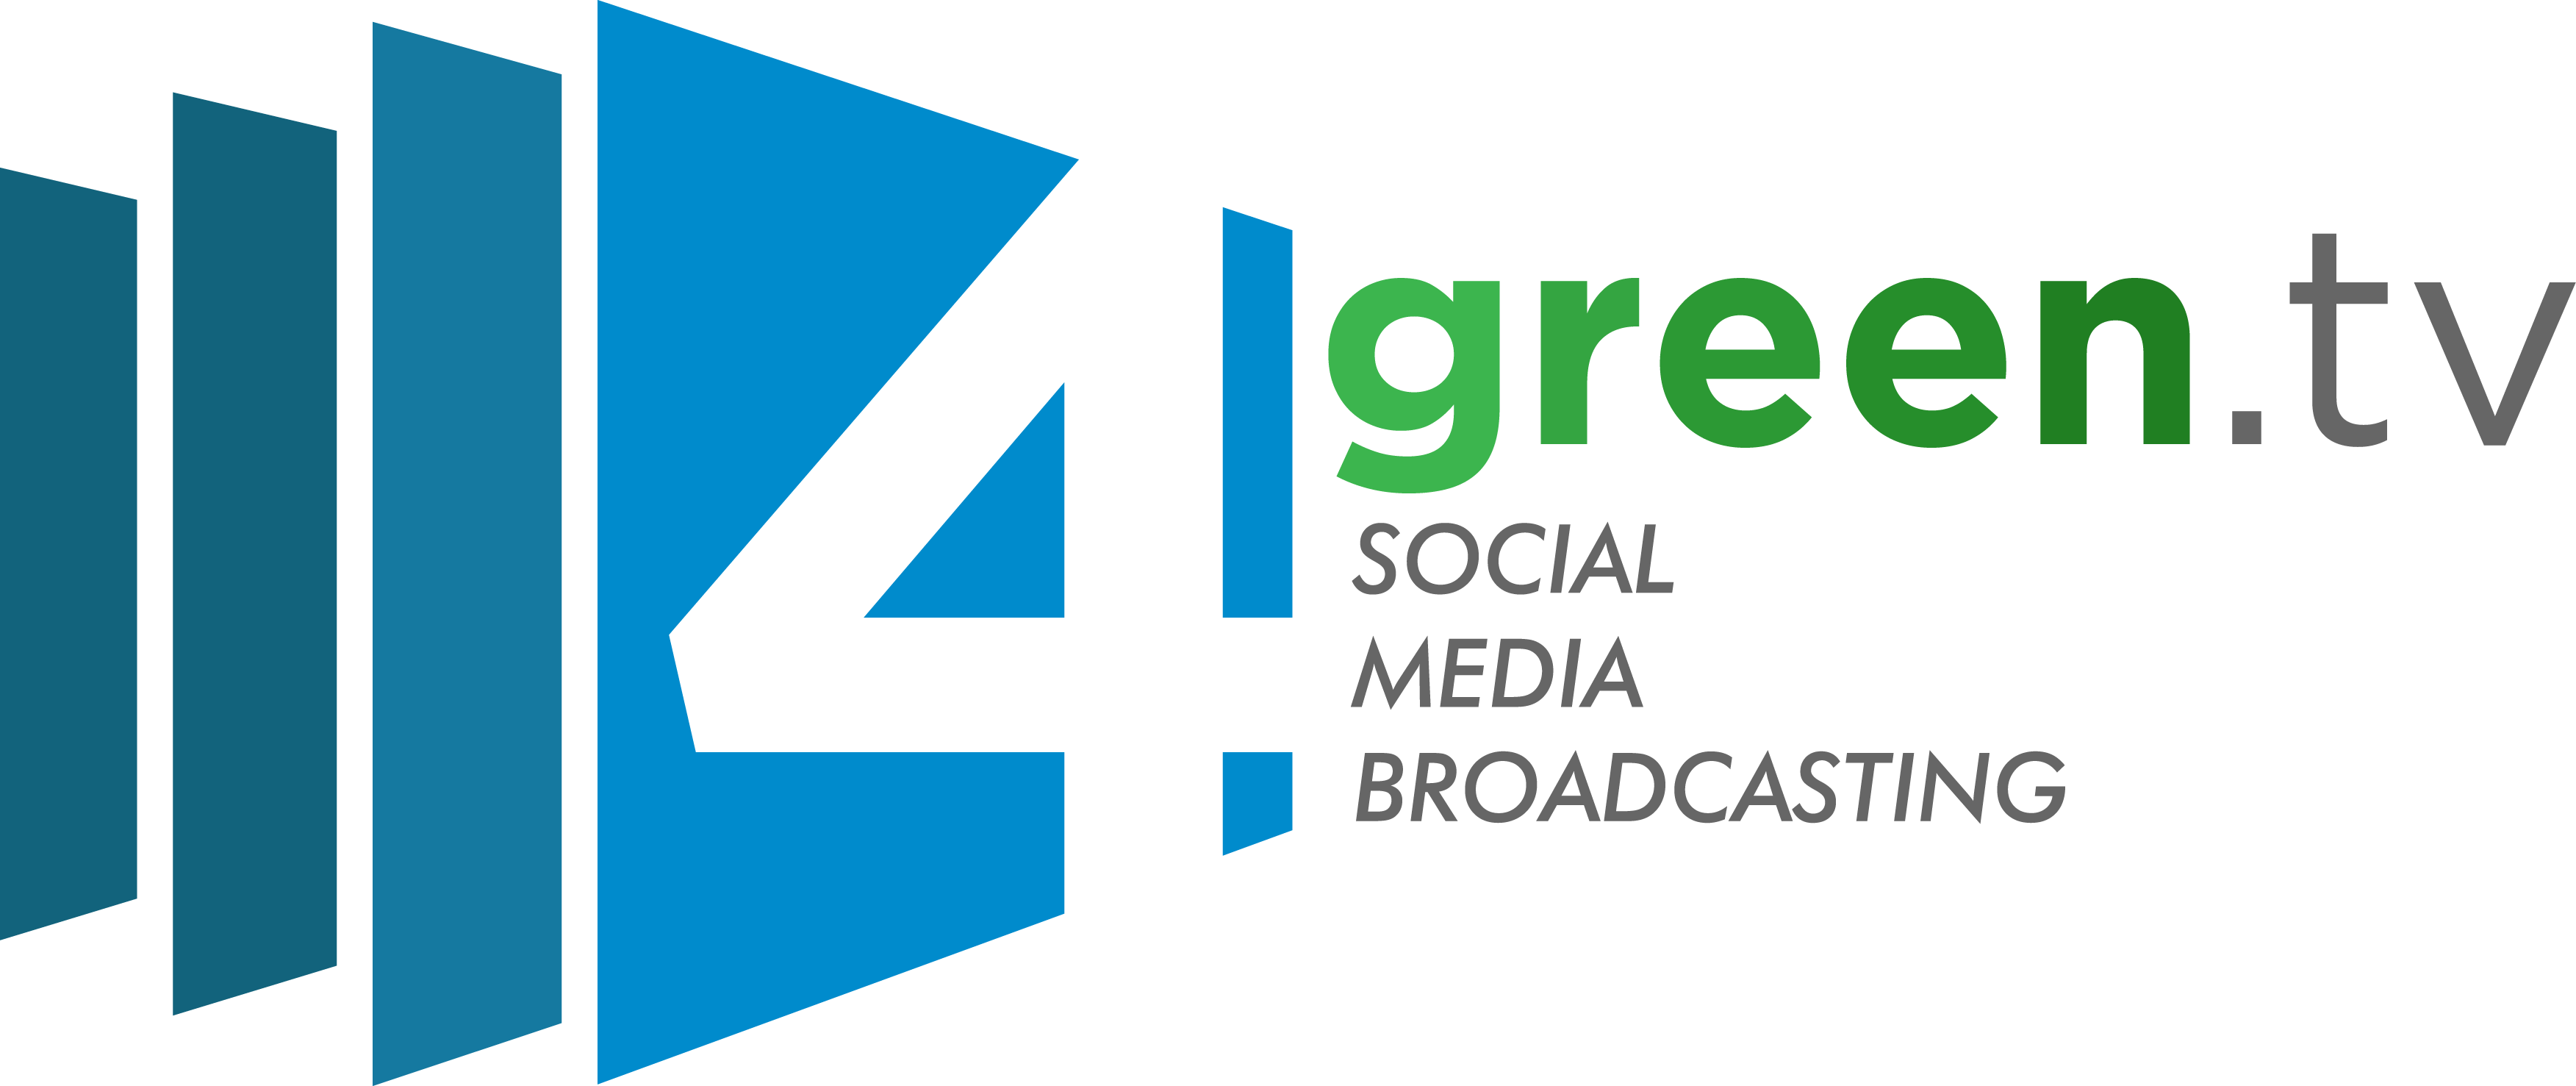 FOURGREEN TV and Social Media Broadcasting